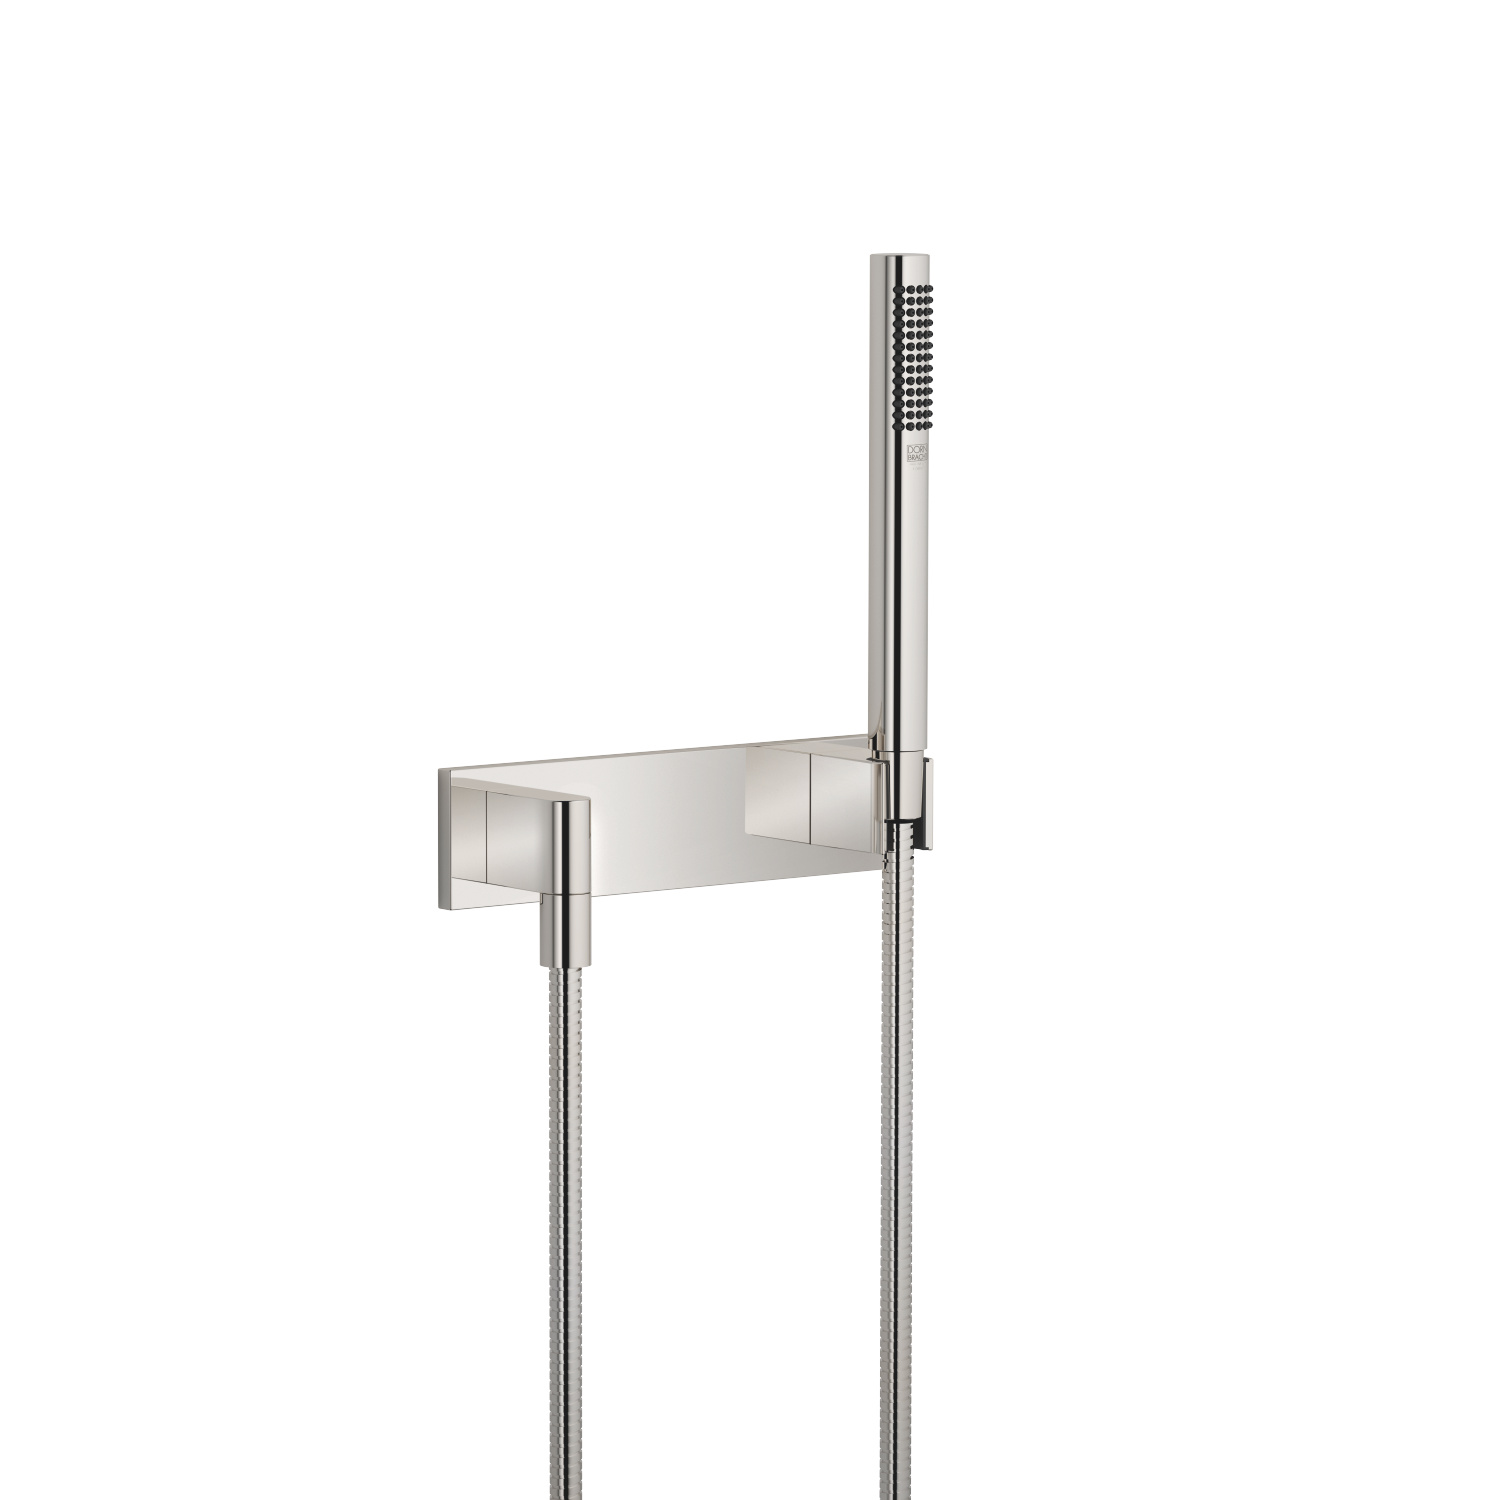 Hand shower set with cover plate - platinum